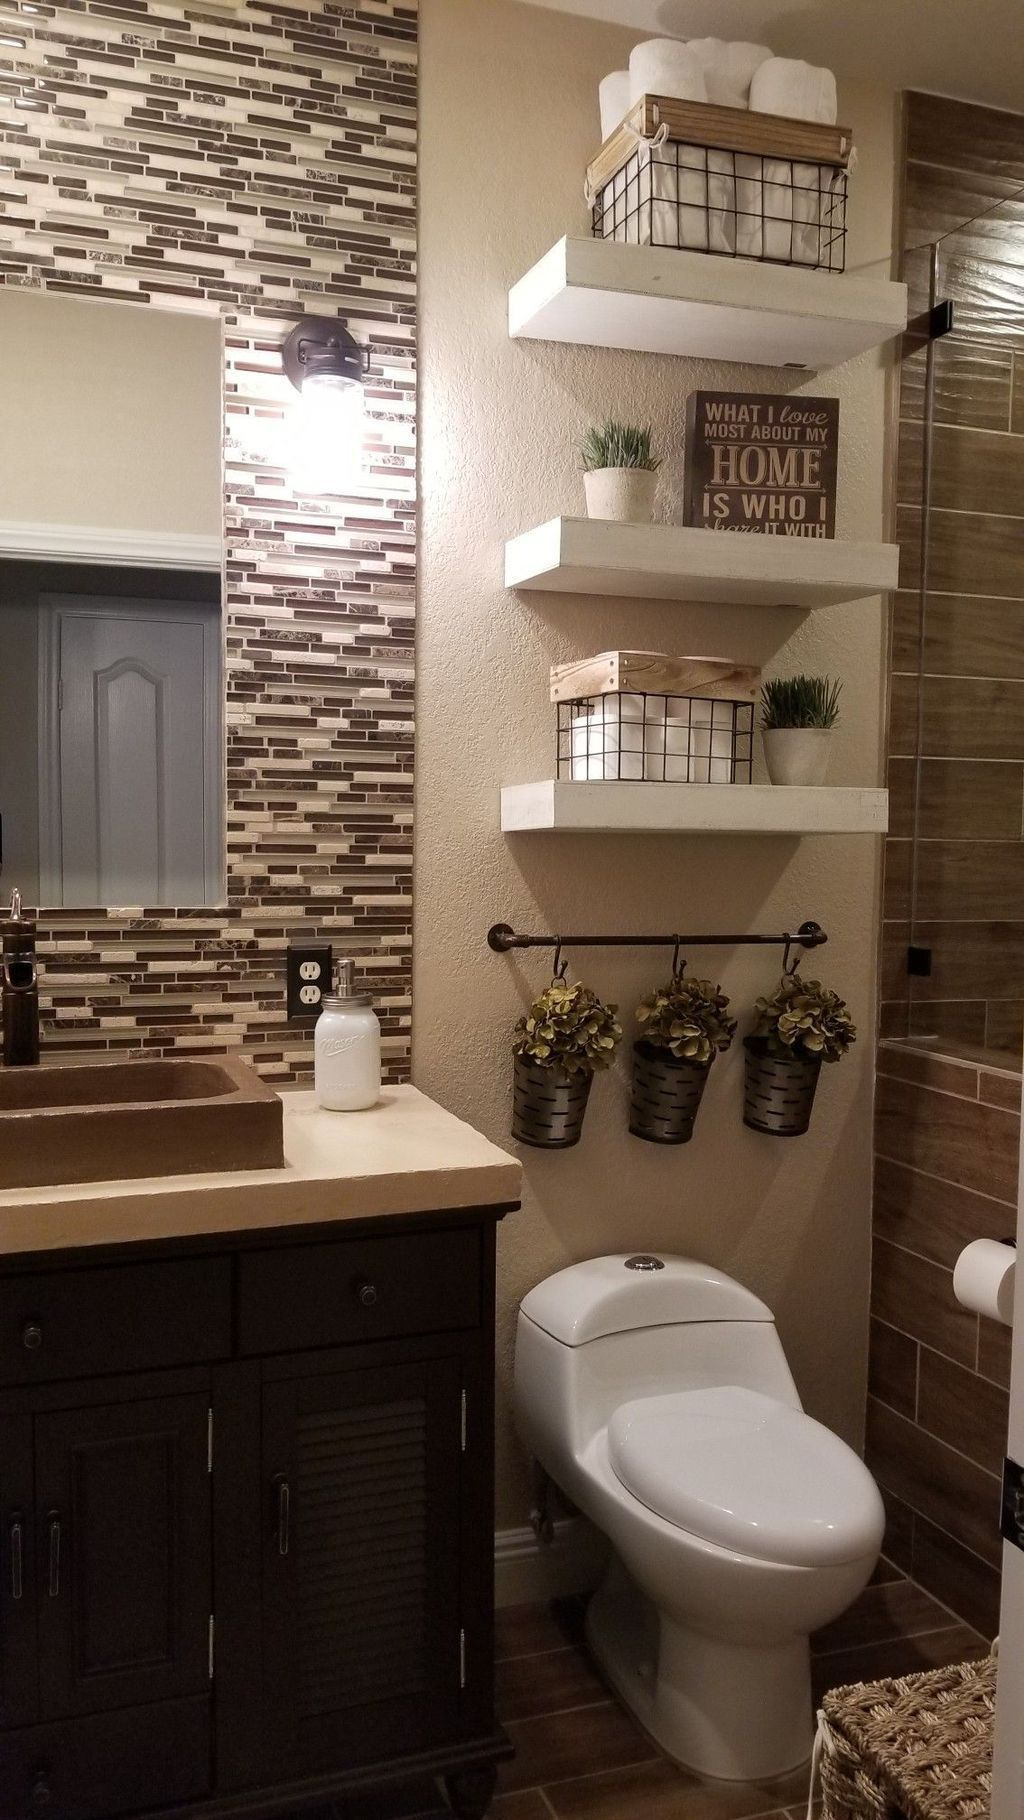 Pictures for Bathroom Decorating Ideas Best Of 80 Small Farmhouse Bathroom Decor Ideas Bathroom Decor